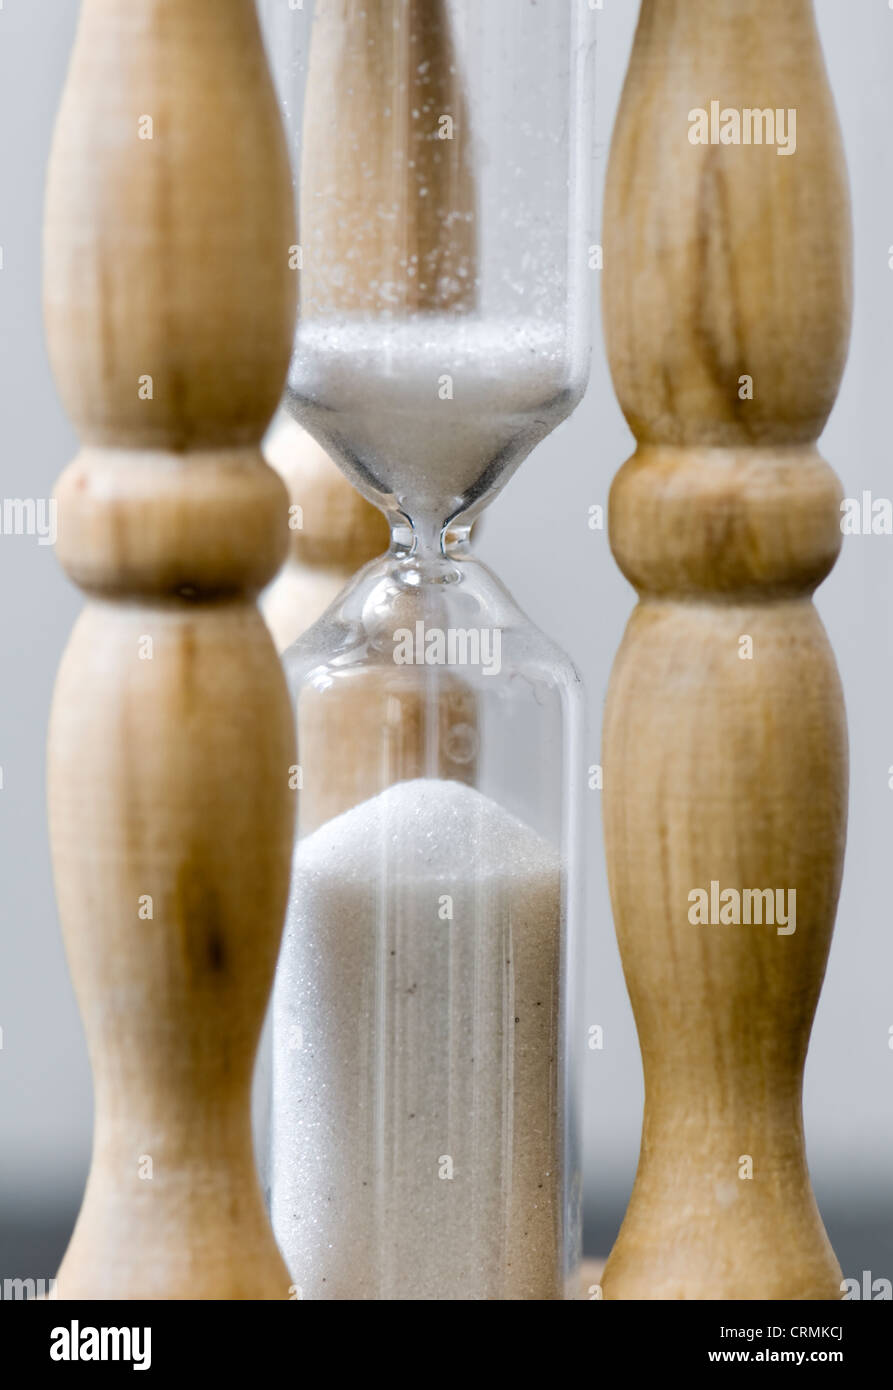 Close up of egg timer or kitchen timer with sand or grains running out, concept of time running out or time is up - Stock Image